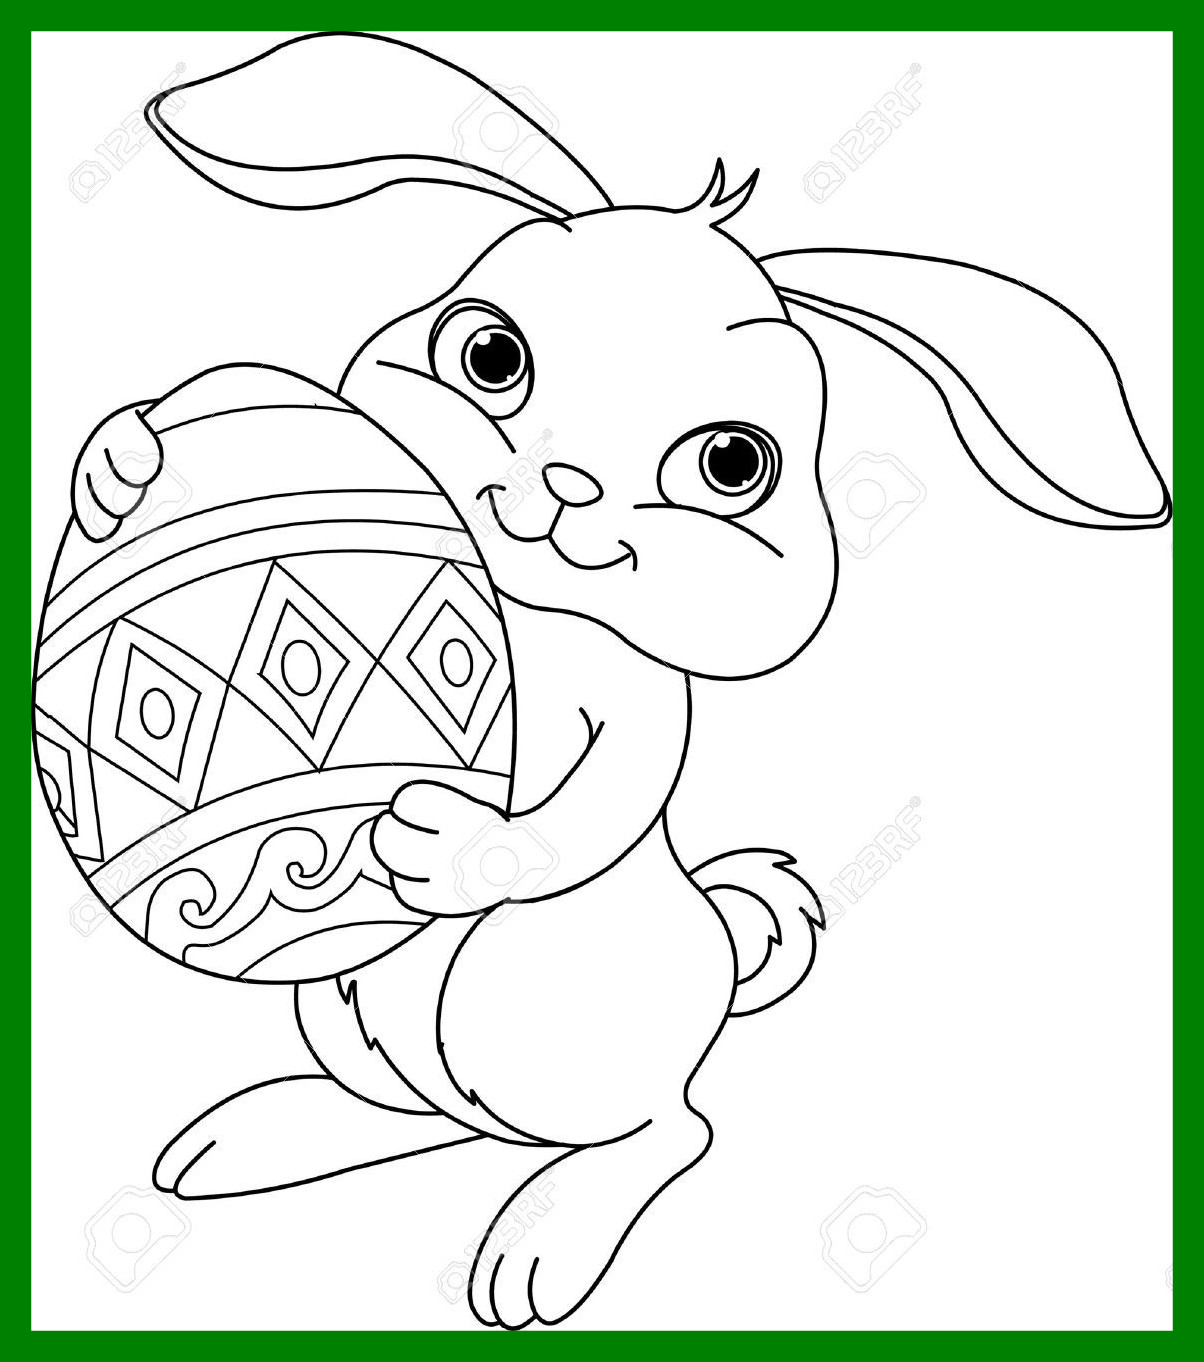 Bunny clipart line art. Incredible easter drawing at